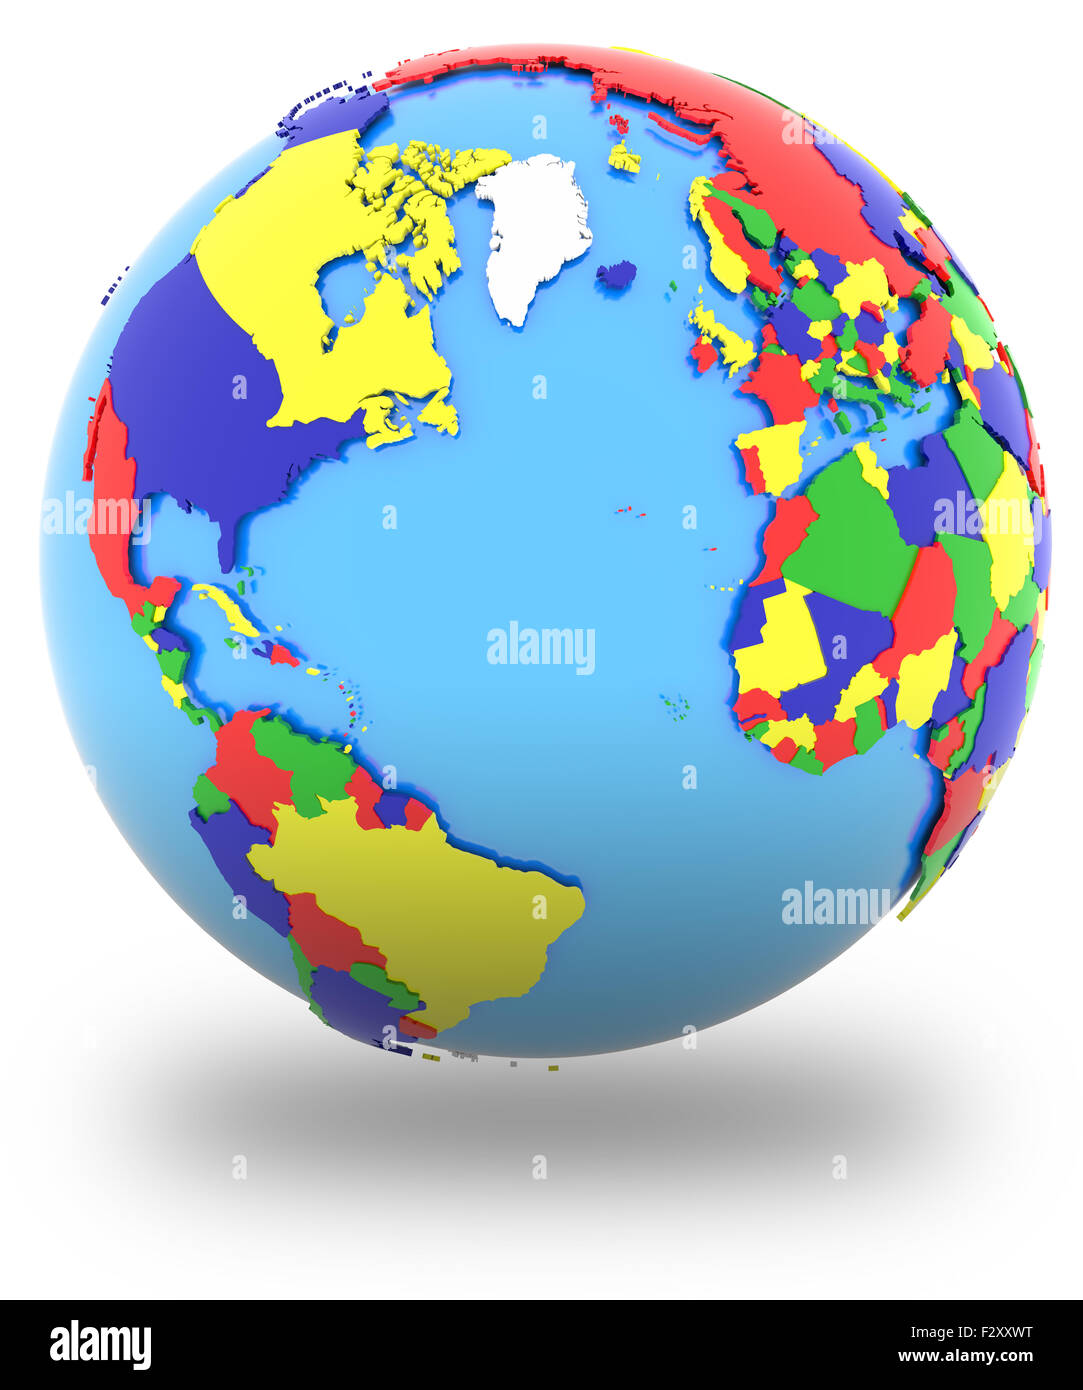 Four hemisphere world map stock photos four hemisphere world map western hemisphere political map of the world with countries in four colours isolated on gumiabroncs Images